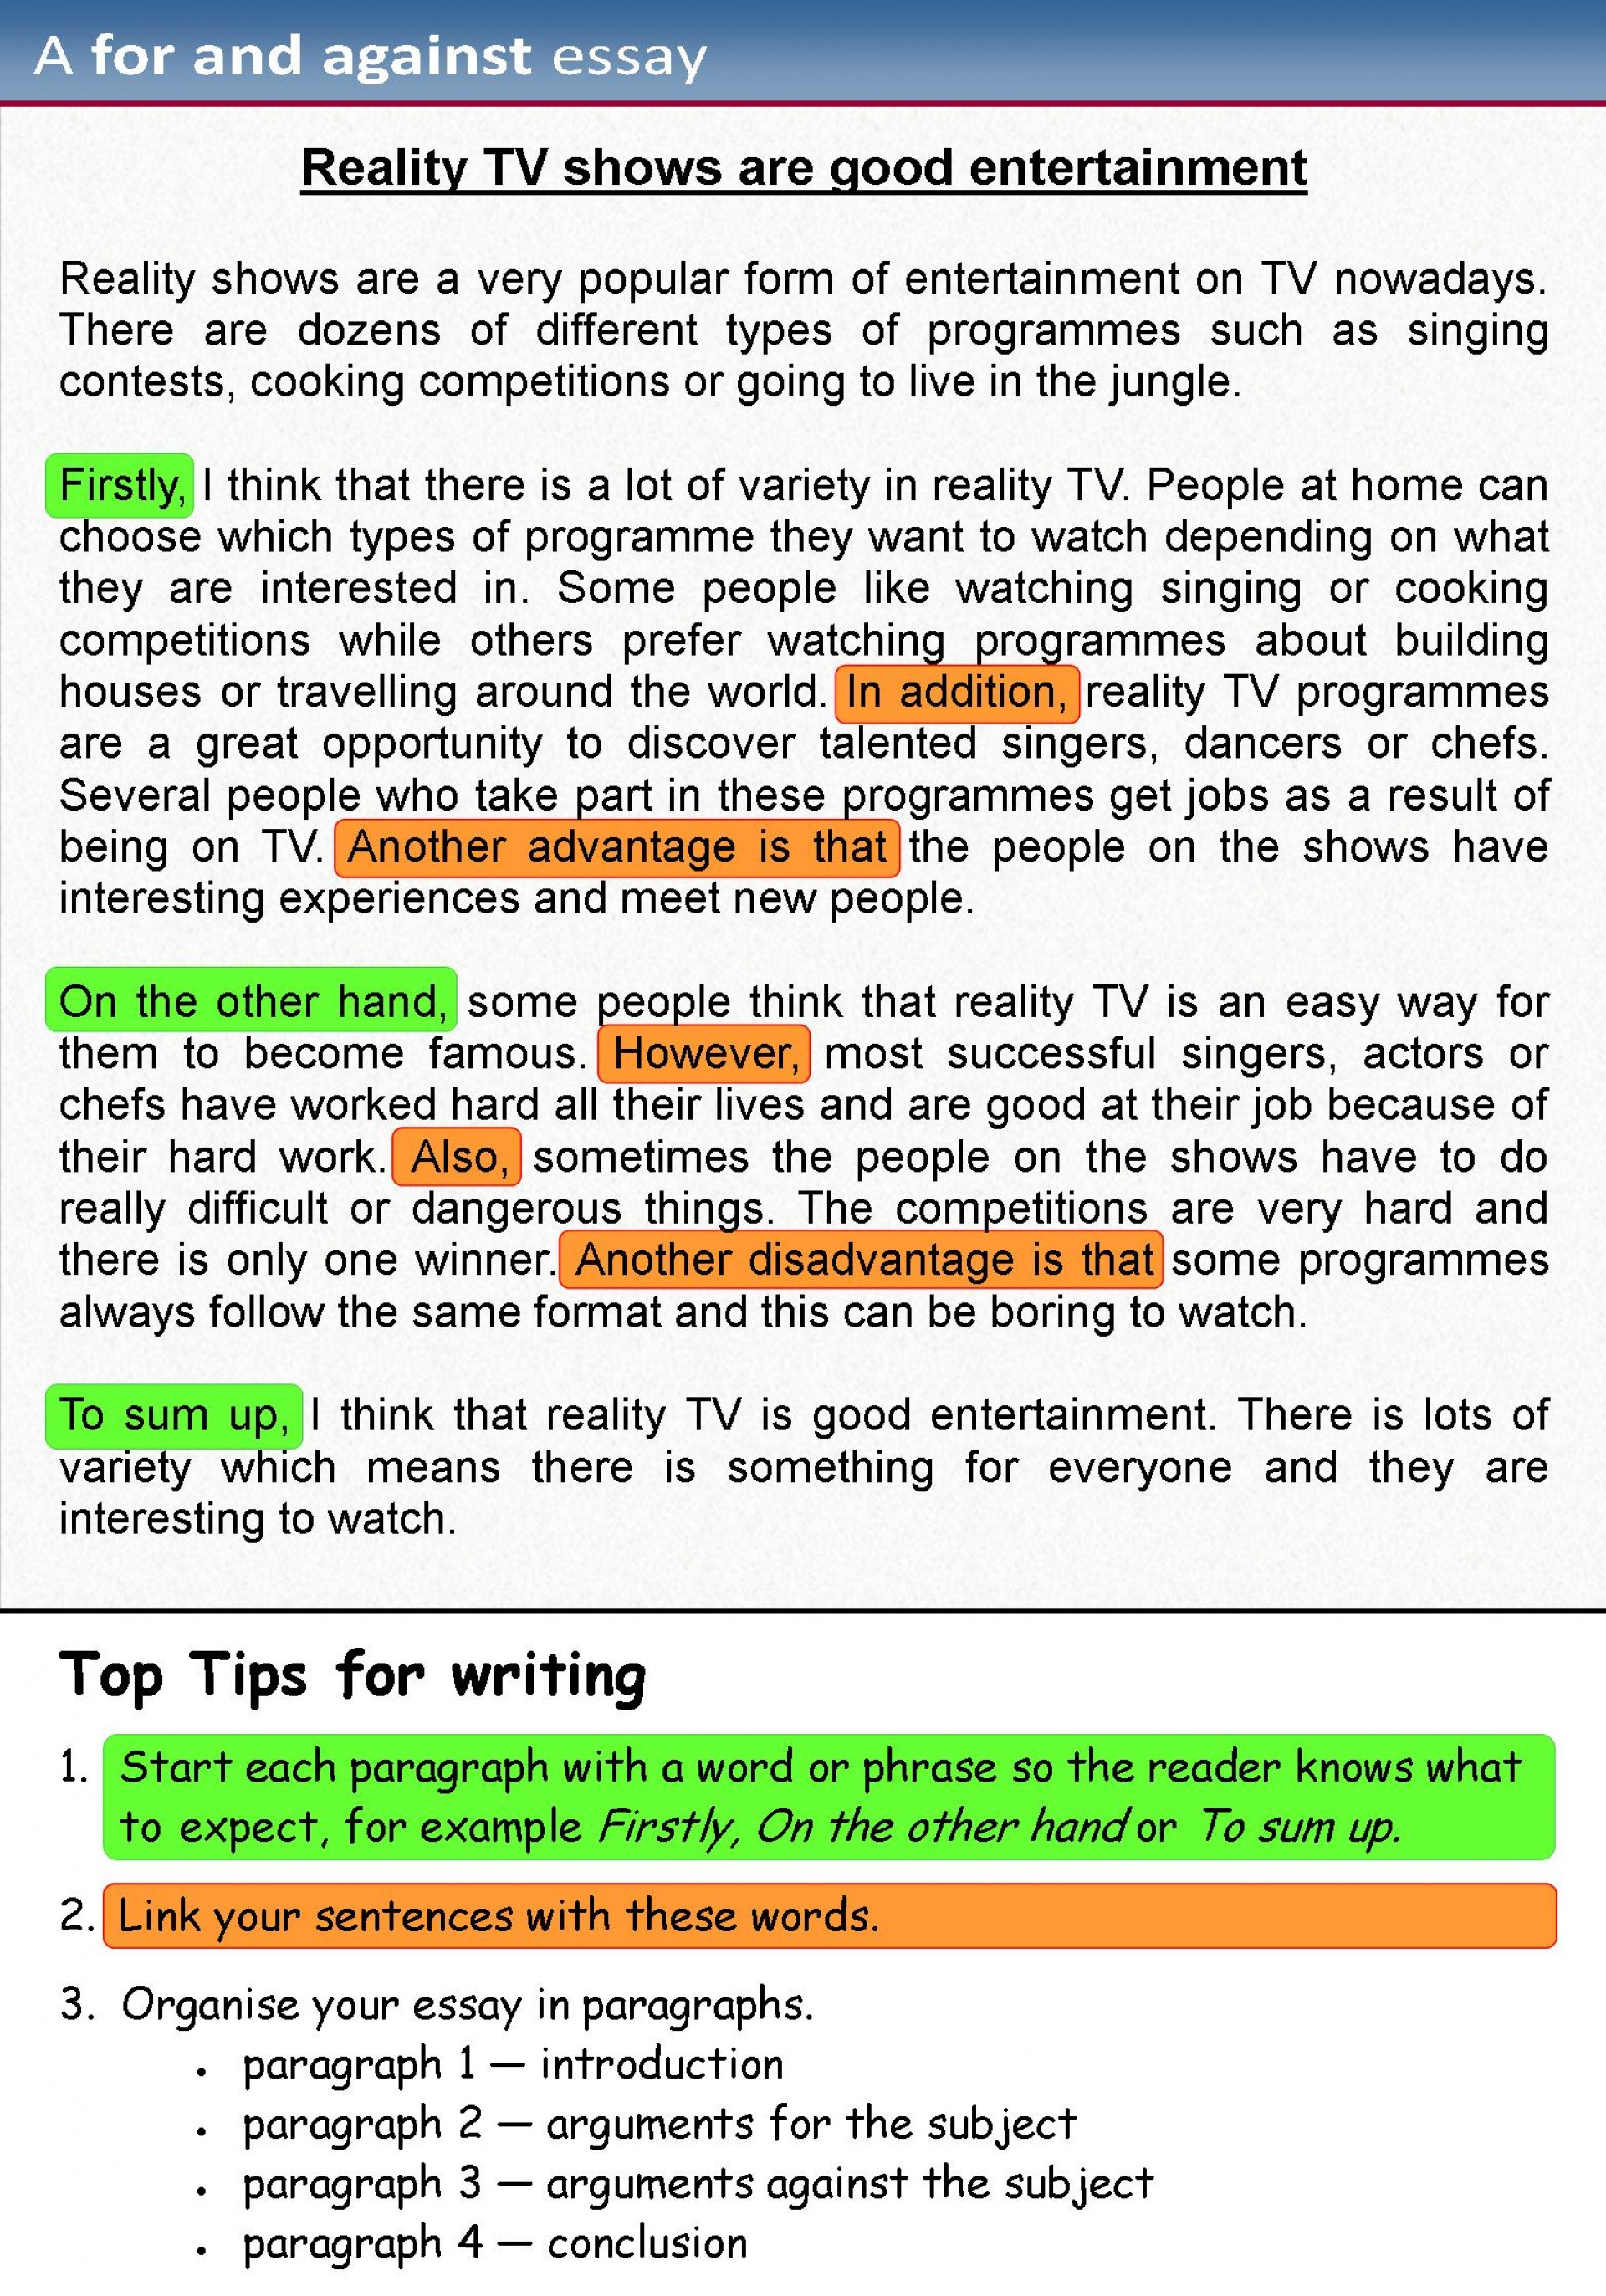 016 Transitional Phrases For Essays Quiz Worksheet Writing